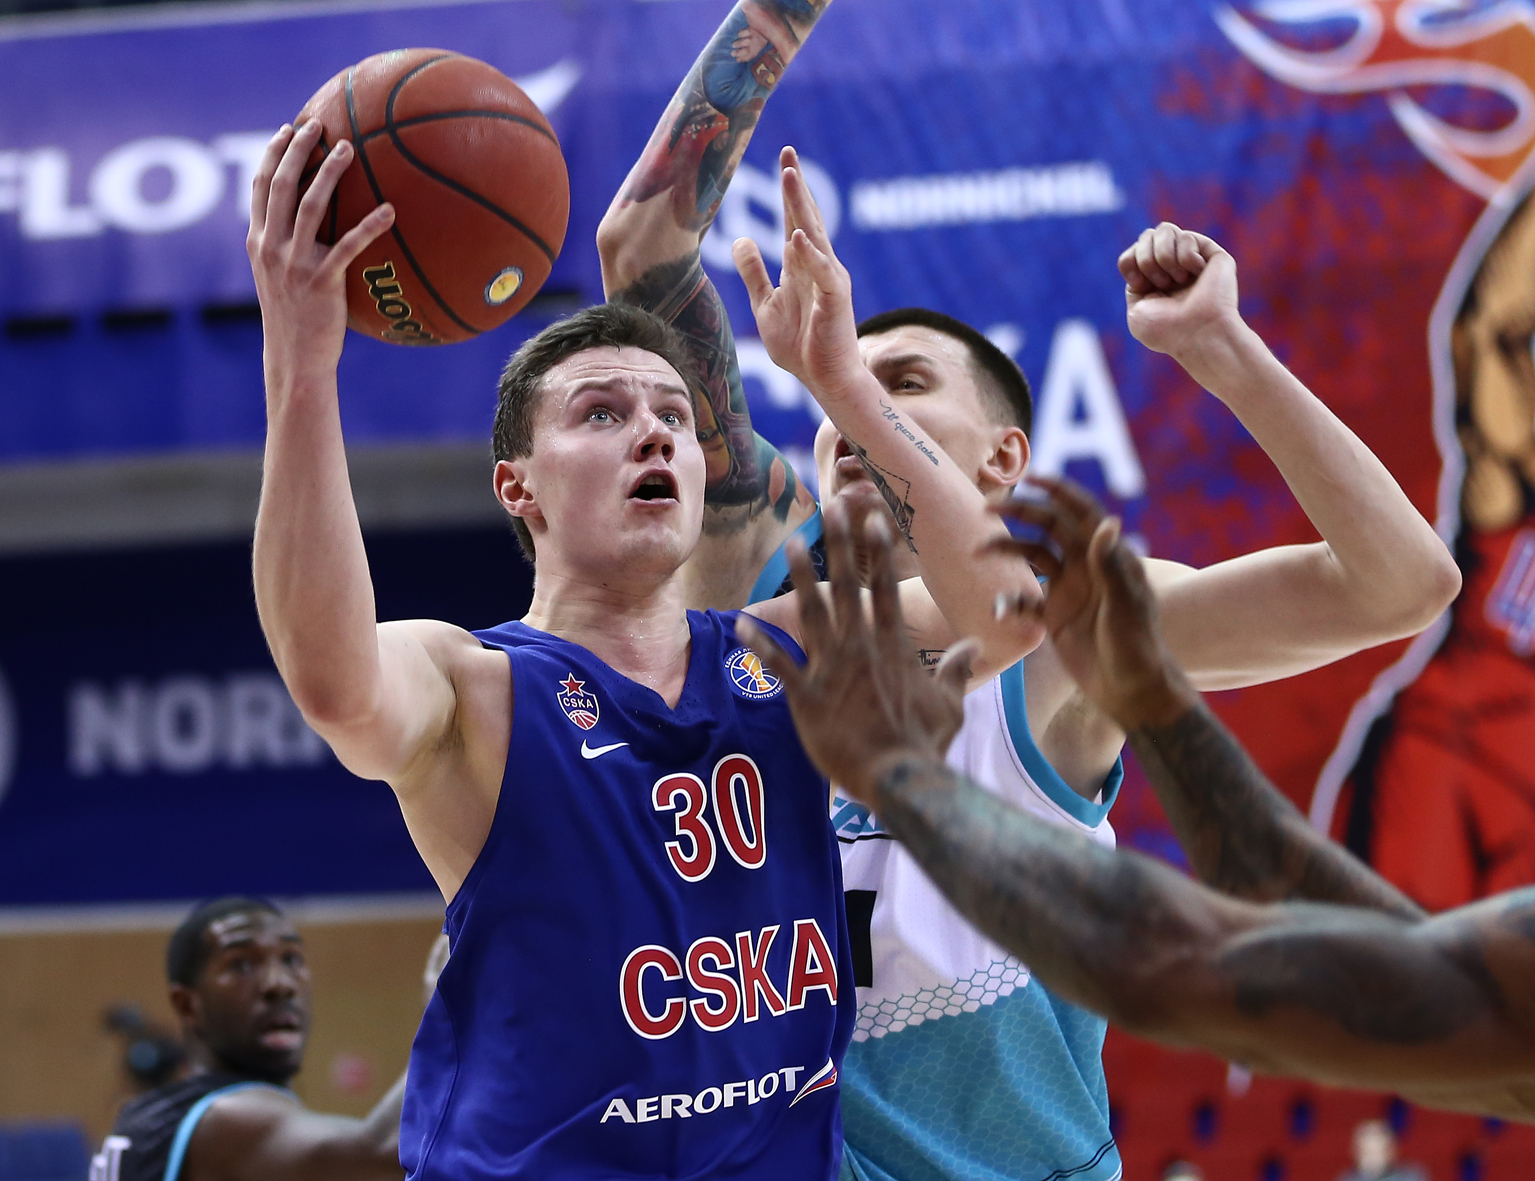 CSKA Cruises On Christmas